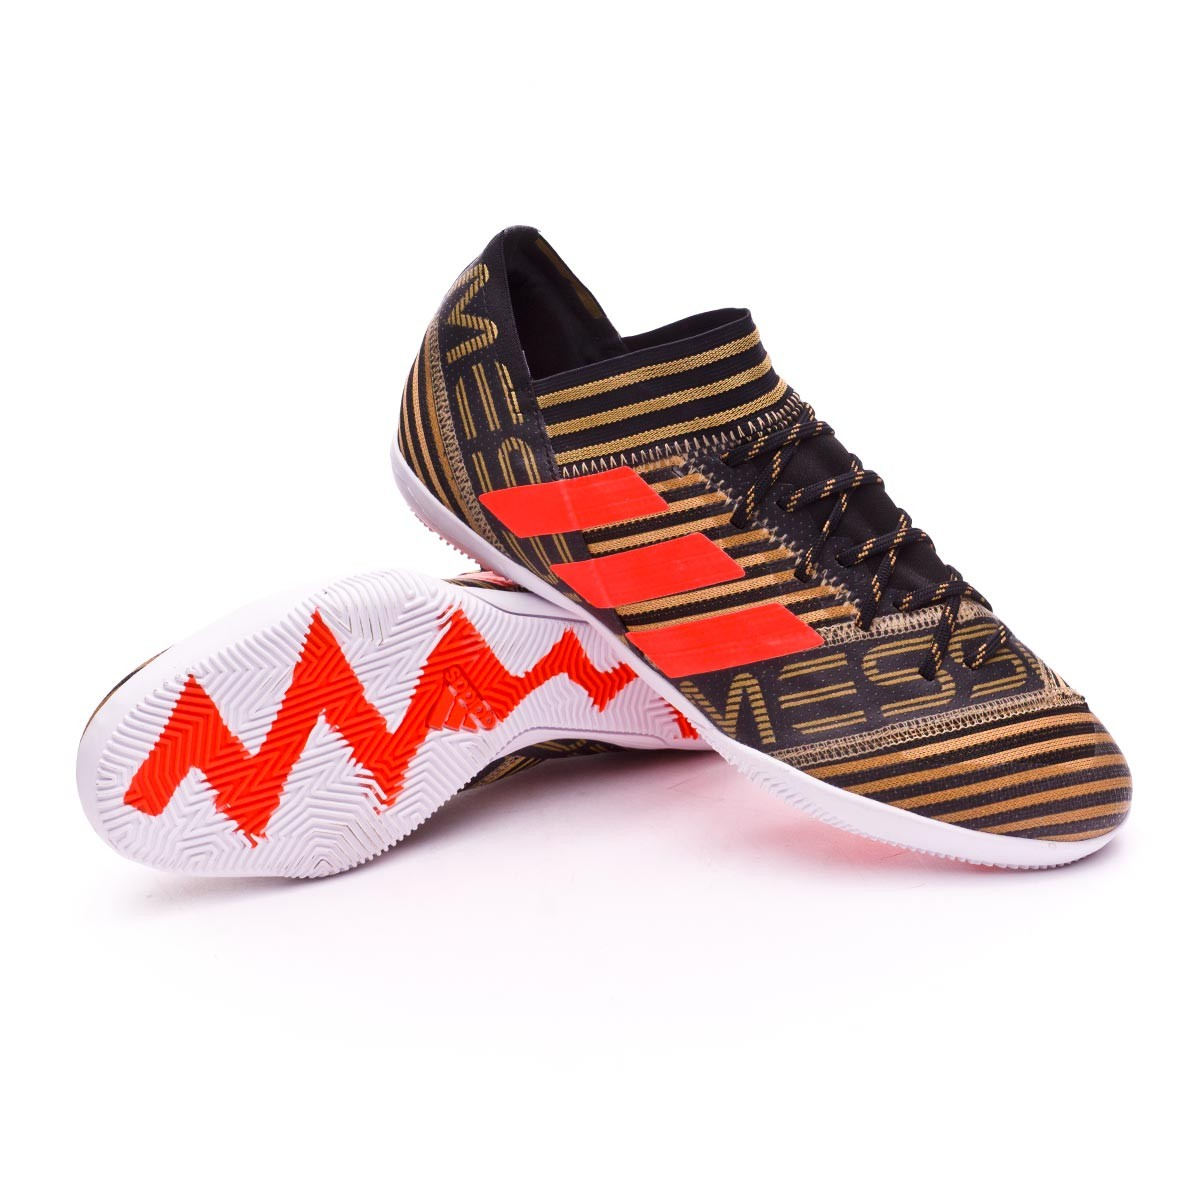 new arrival 38fa2 53a0d adidas Nemeziz Messi Tango 17.3 IN Futsal Boot. Core black-Solar red-Tactile  ...